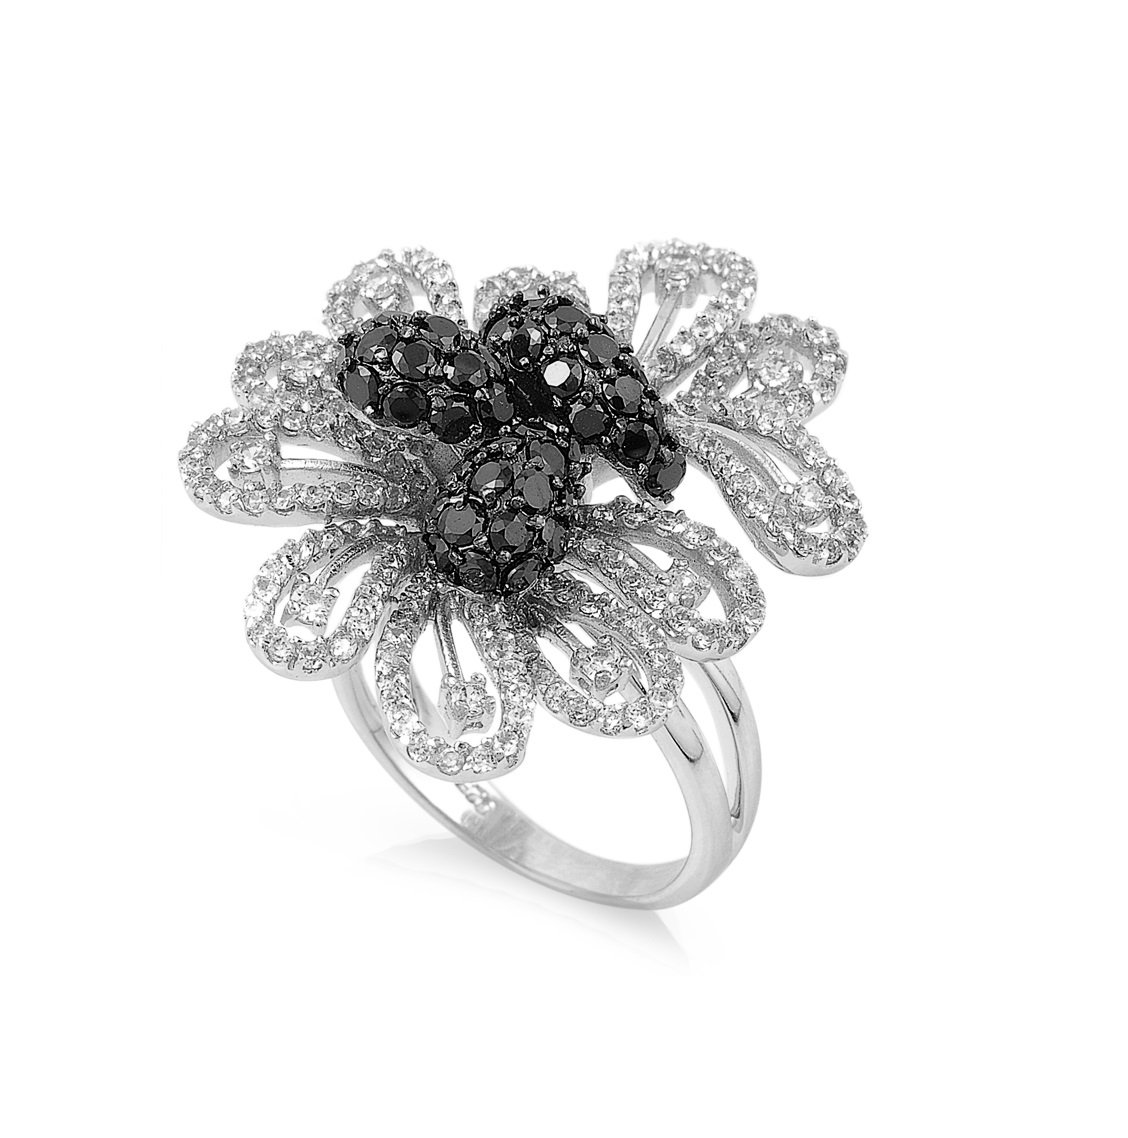 Clear Cubic Zirconia Hera Flower Ring 925 Sterling Silver Size 8